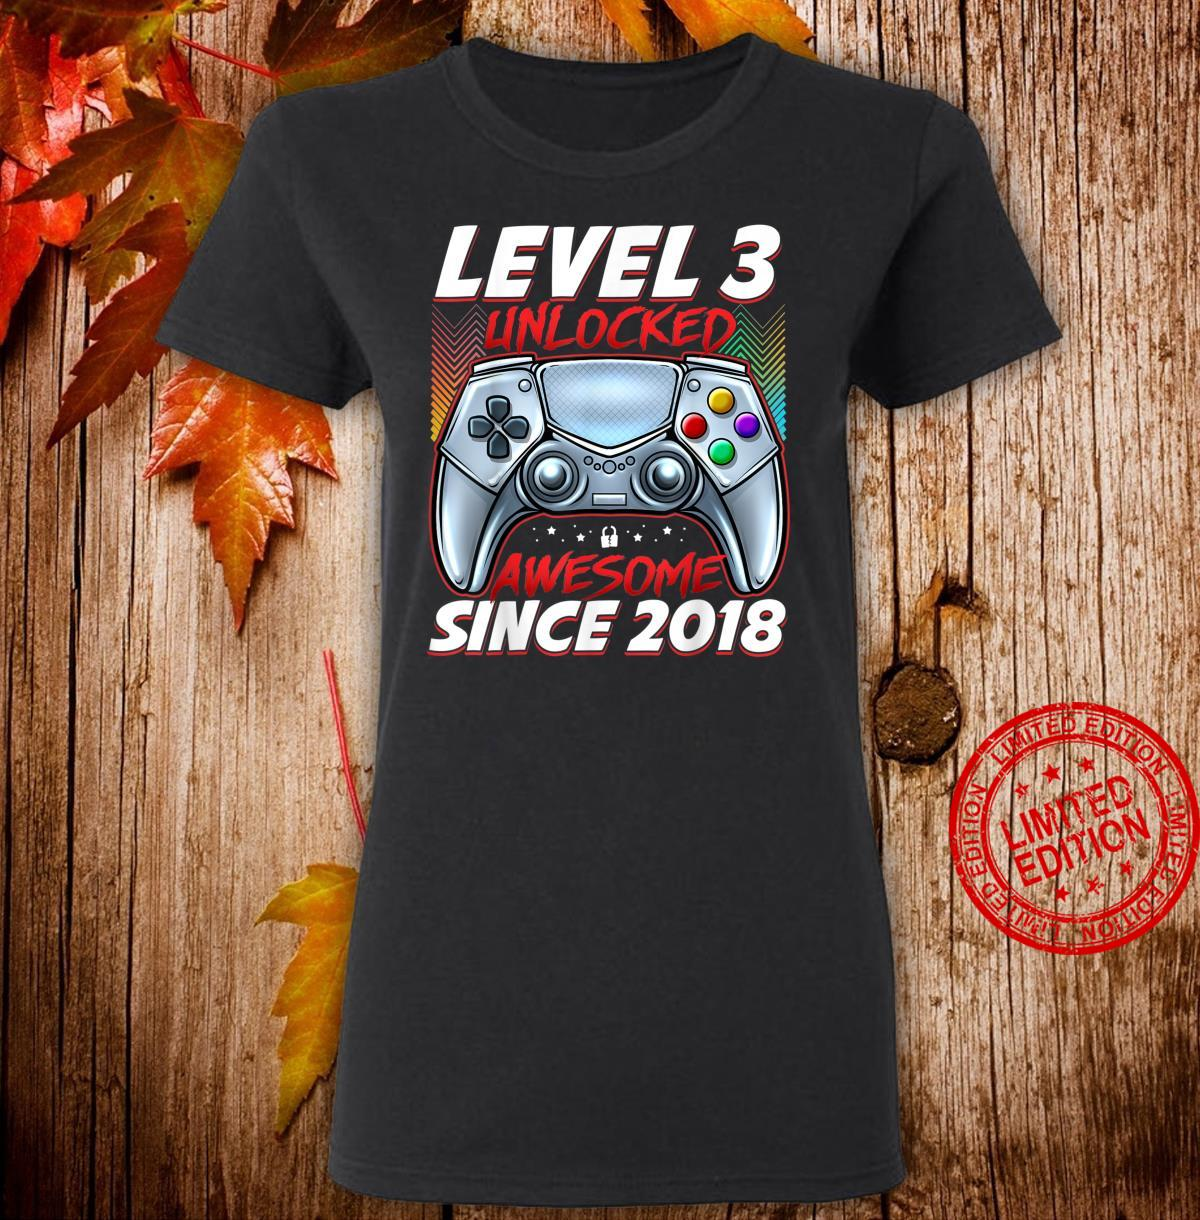 Level 3 Unlocked Awesome Since 2018 3rd Birthday Gaming Shirt ladies tee